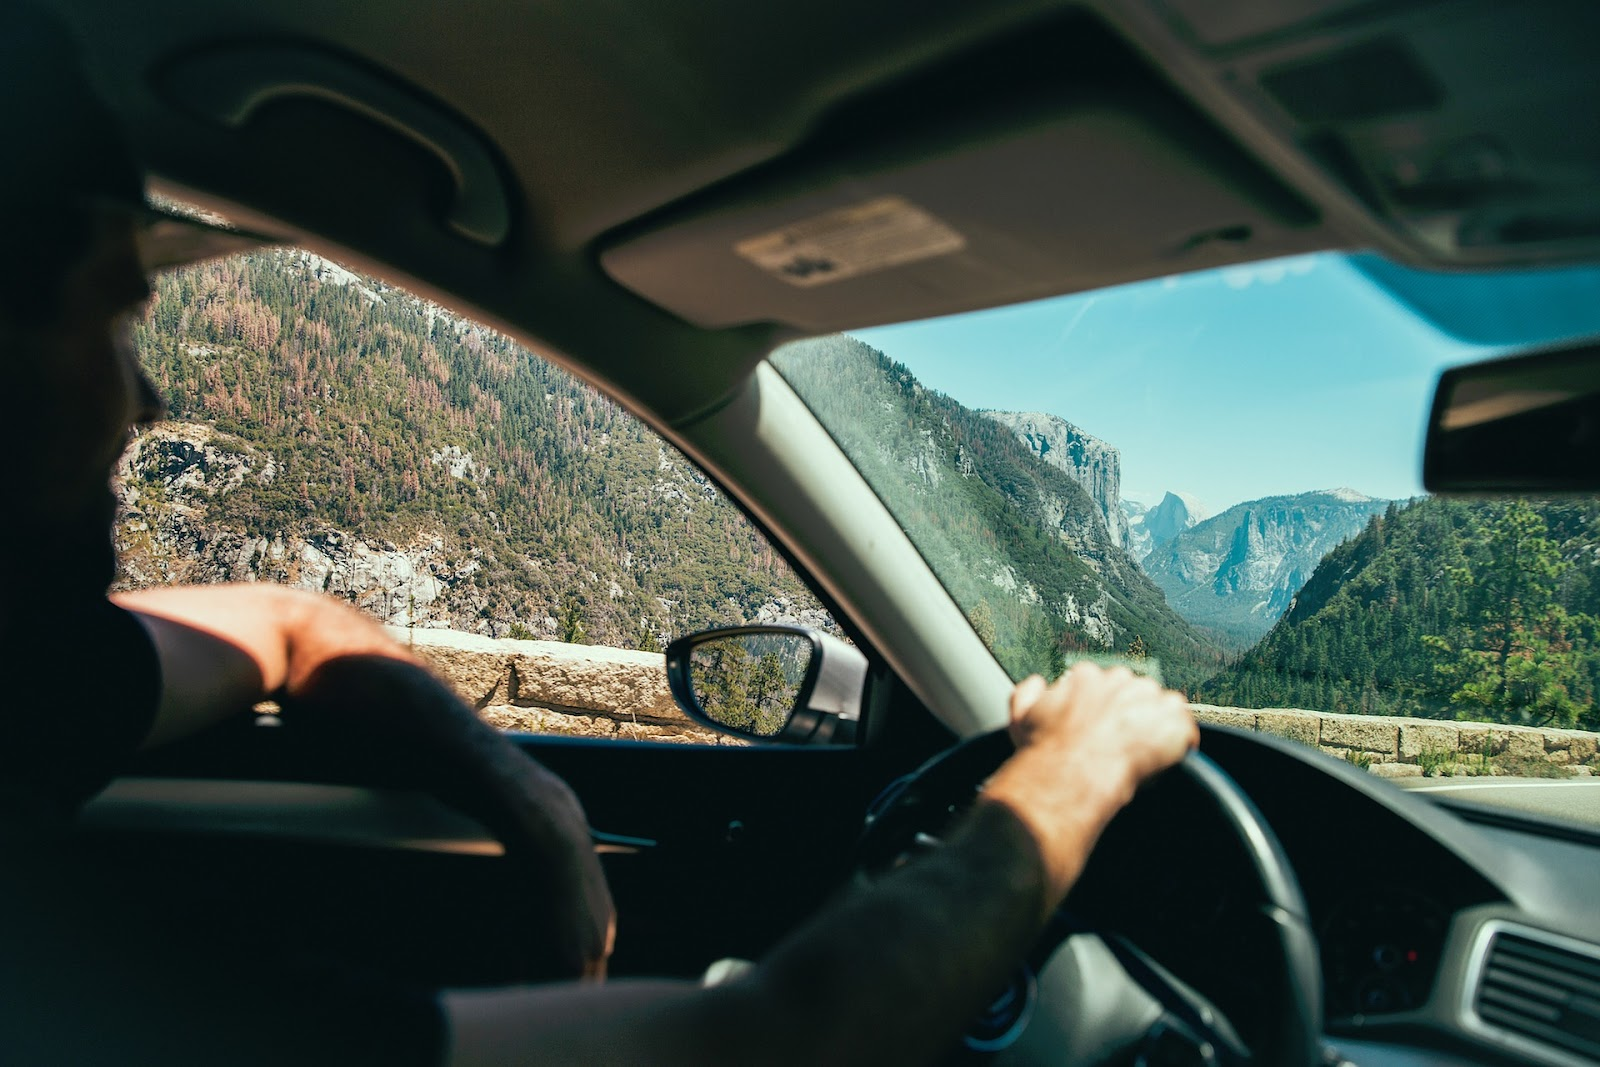 man driving car right hand on steering wheel left elbow out of the window driving through forest mountains nature